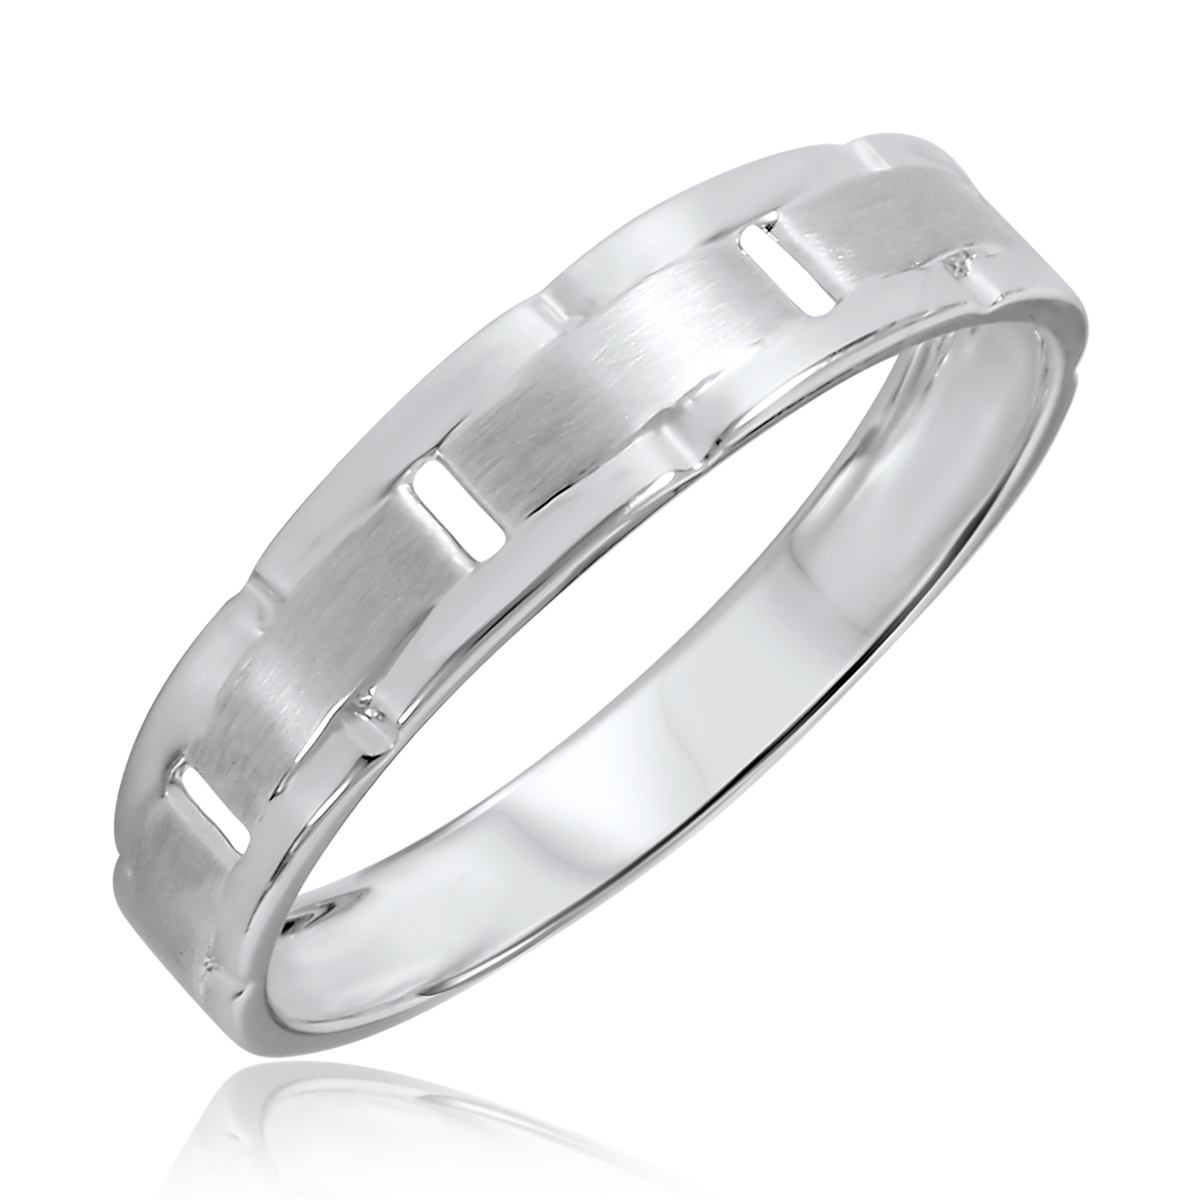 Traditional Contemporary, 5 millimeter, 10K White Gold Traditional Mens Wedding